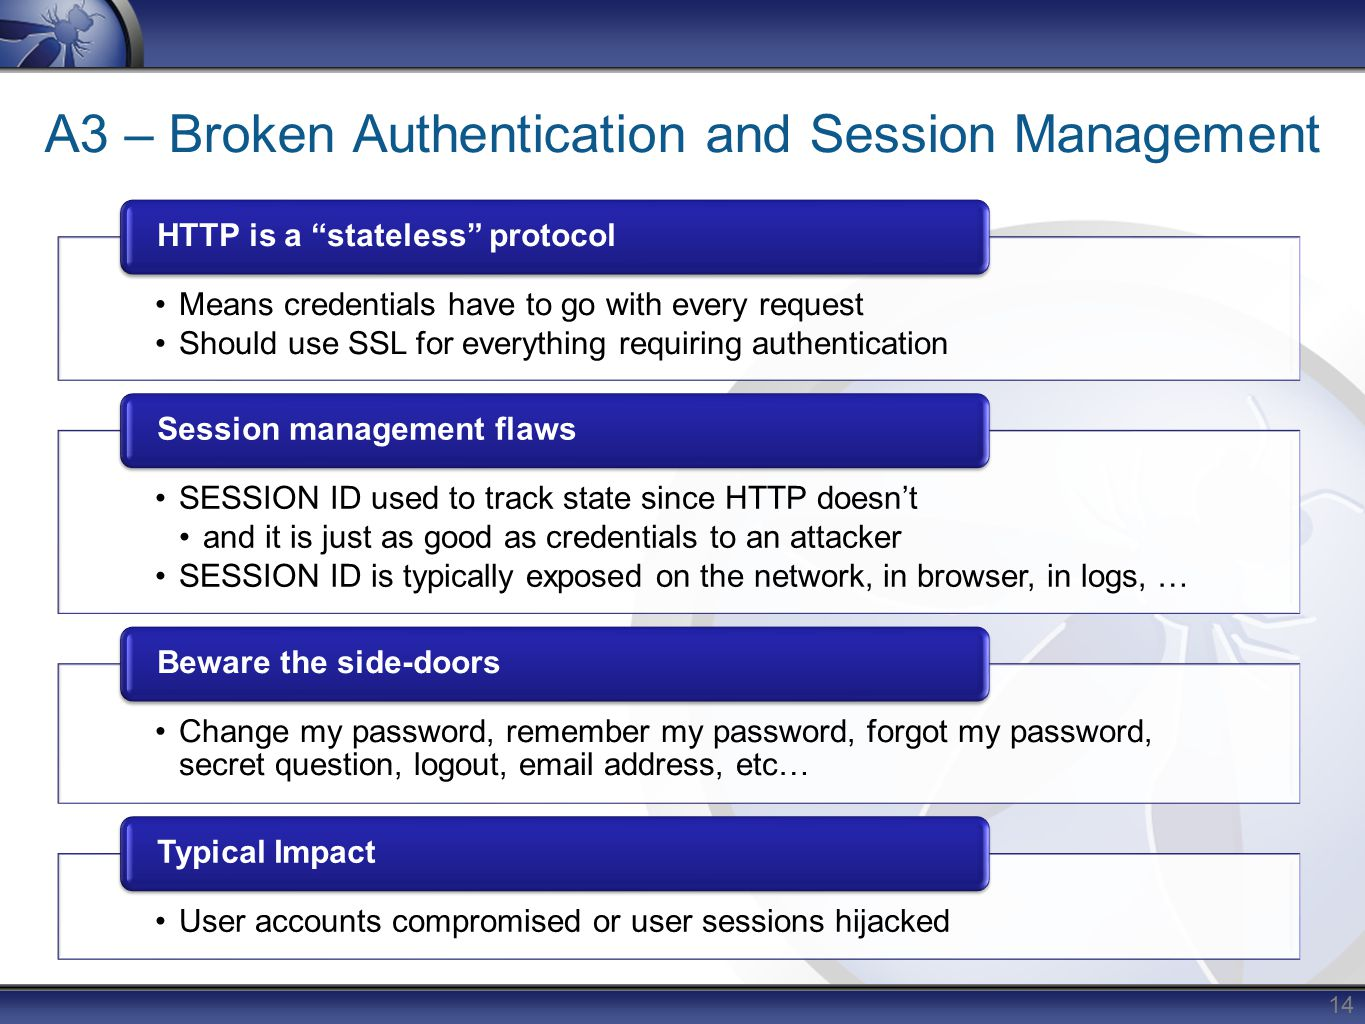 A3 – Broken Authentication and Session Management Means credentials have to go with every request Should use SSL for everything requiring authentication HTTP is a stateless protocol SESSION ID used to track state since HTTP doesn't and it is just as good as credentials to an attacker SESSION ID is typically exposed on the network, in browser, in logs, … Session management flaws Change my password, remember my password, forgot my password, secret question, logout, email address, etc… Beware the side-doors User accounts compromised or user sessions hijacked Typical Impact 14